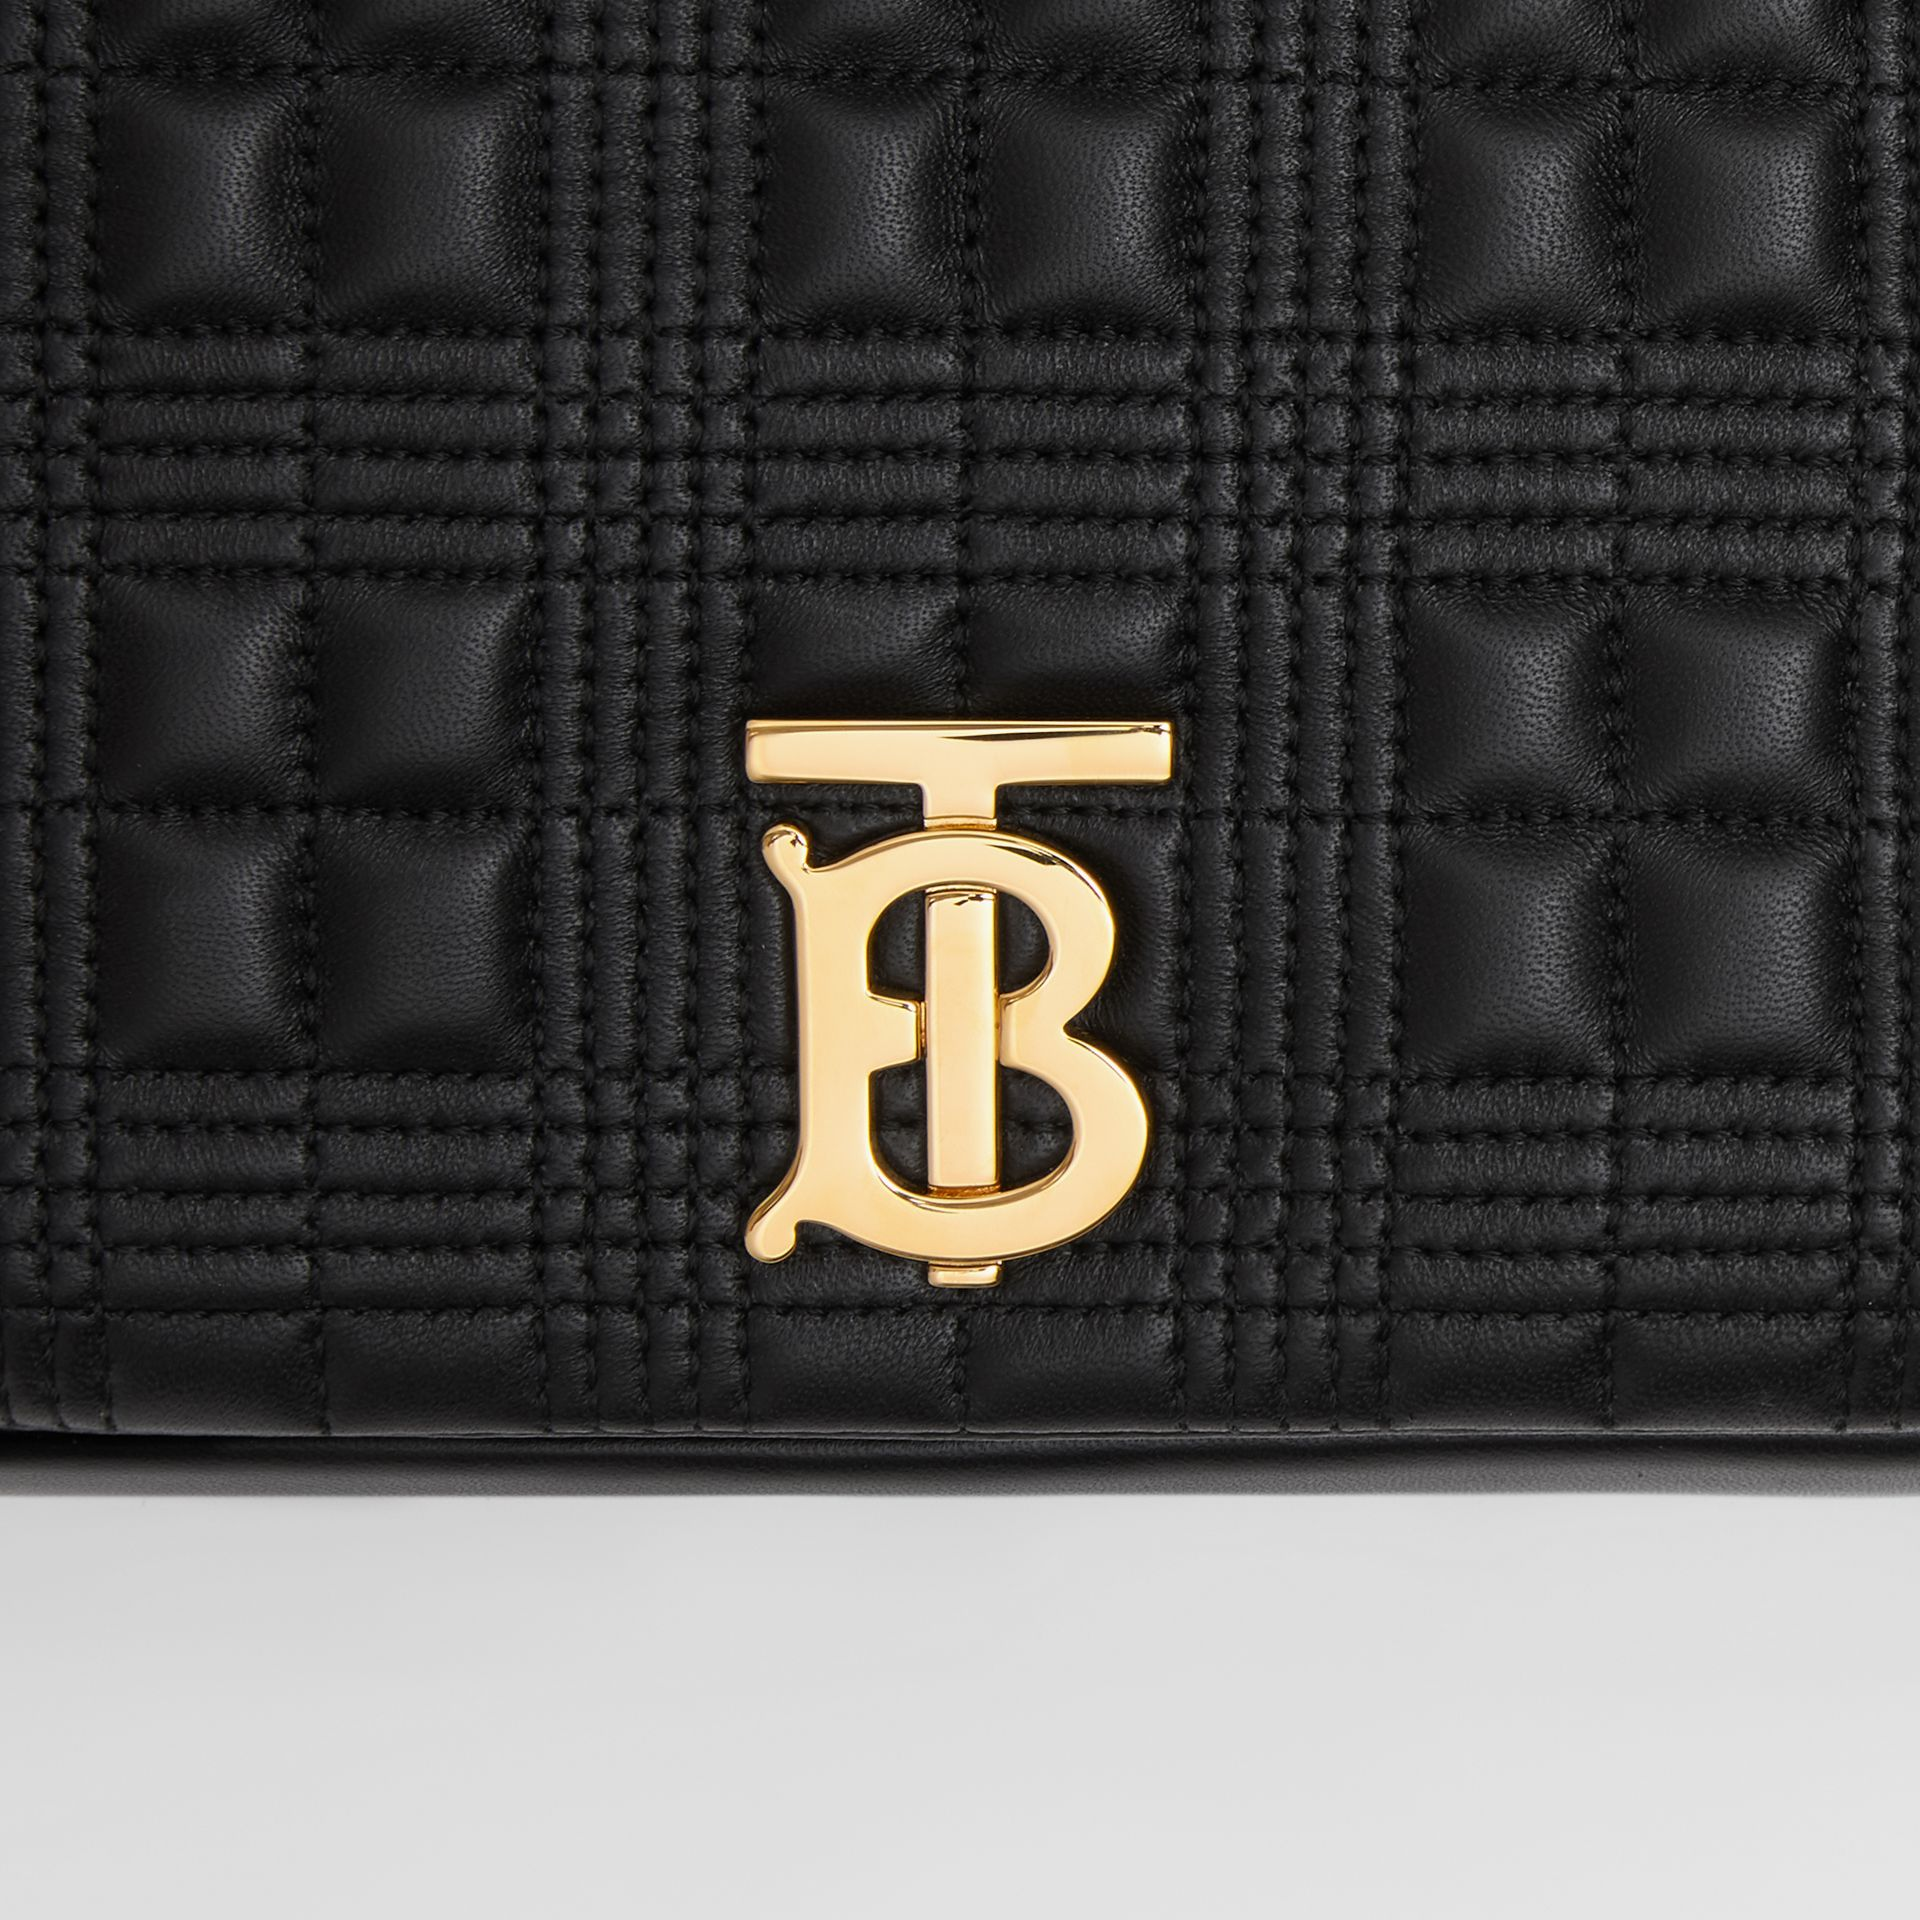 Medium Quilted Lambskin Lola Bag in Black/light Gold - Women | Burberry United States - gallery image 1